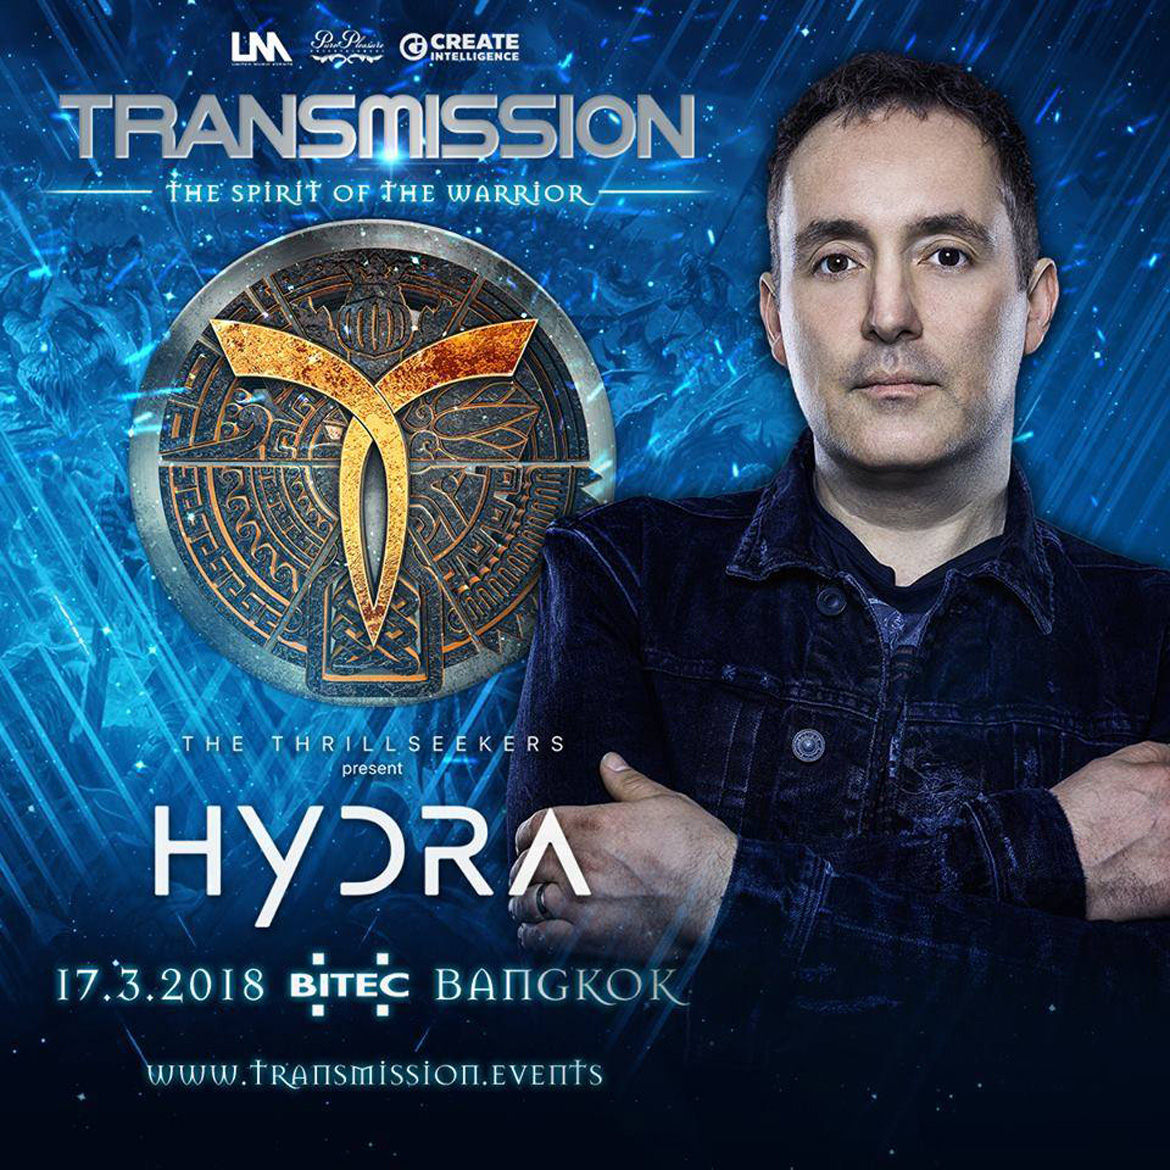 The Thrillseekers @ Transmission 2018 Lineup